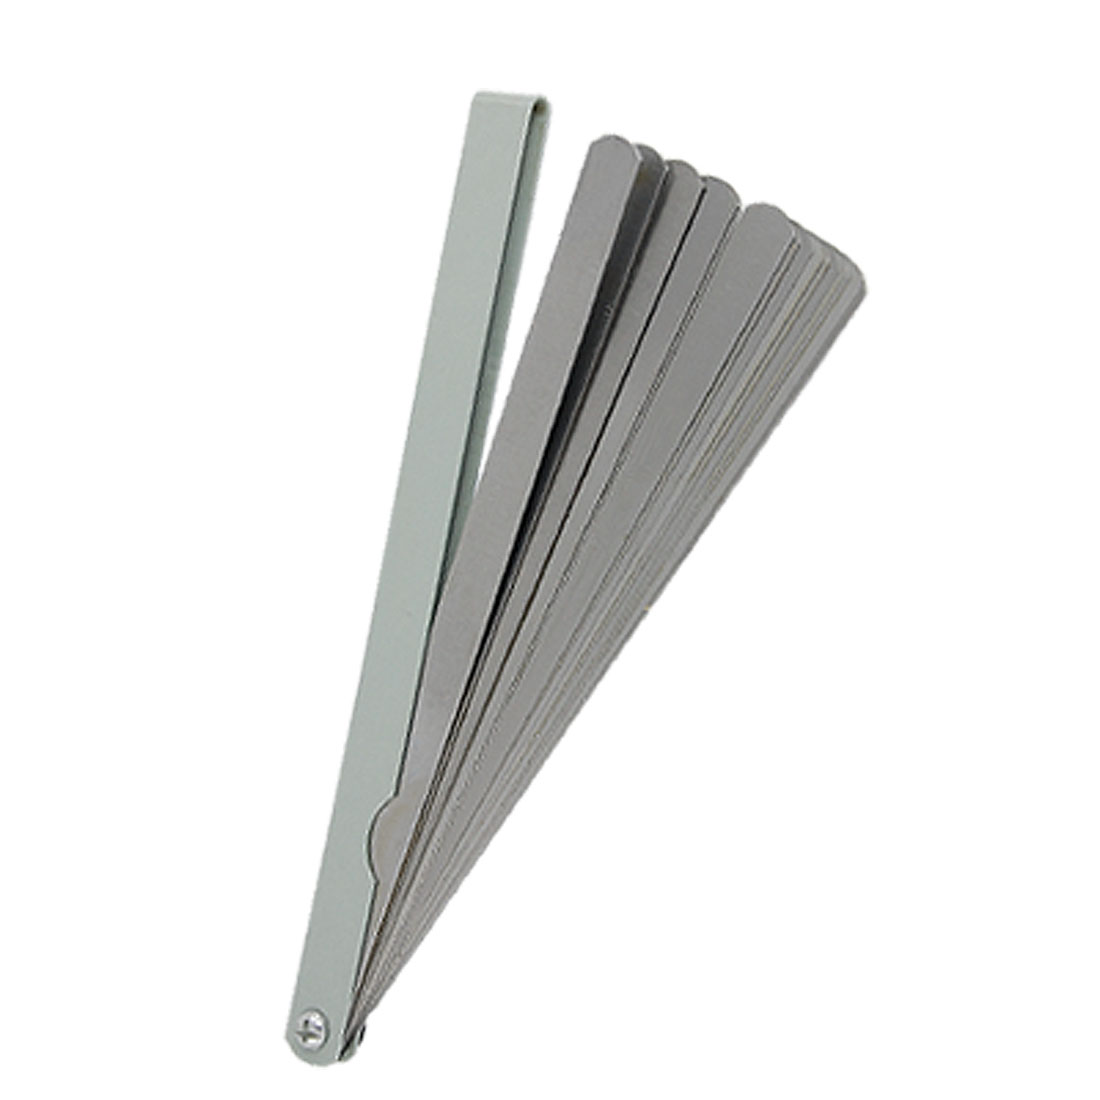 "8"" Length 0.02-1mm Metric Gap Measure Feeler Gauge"